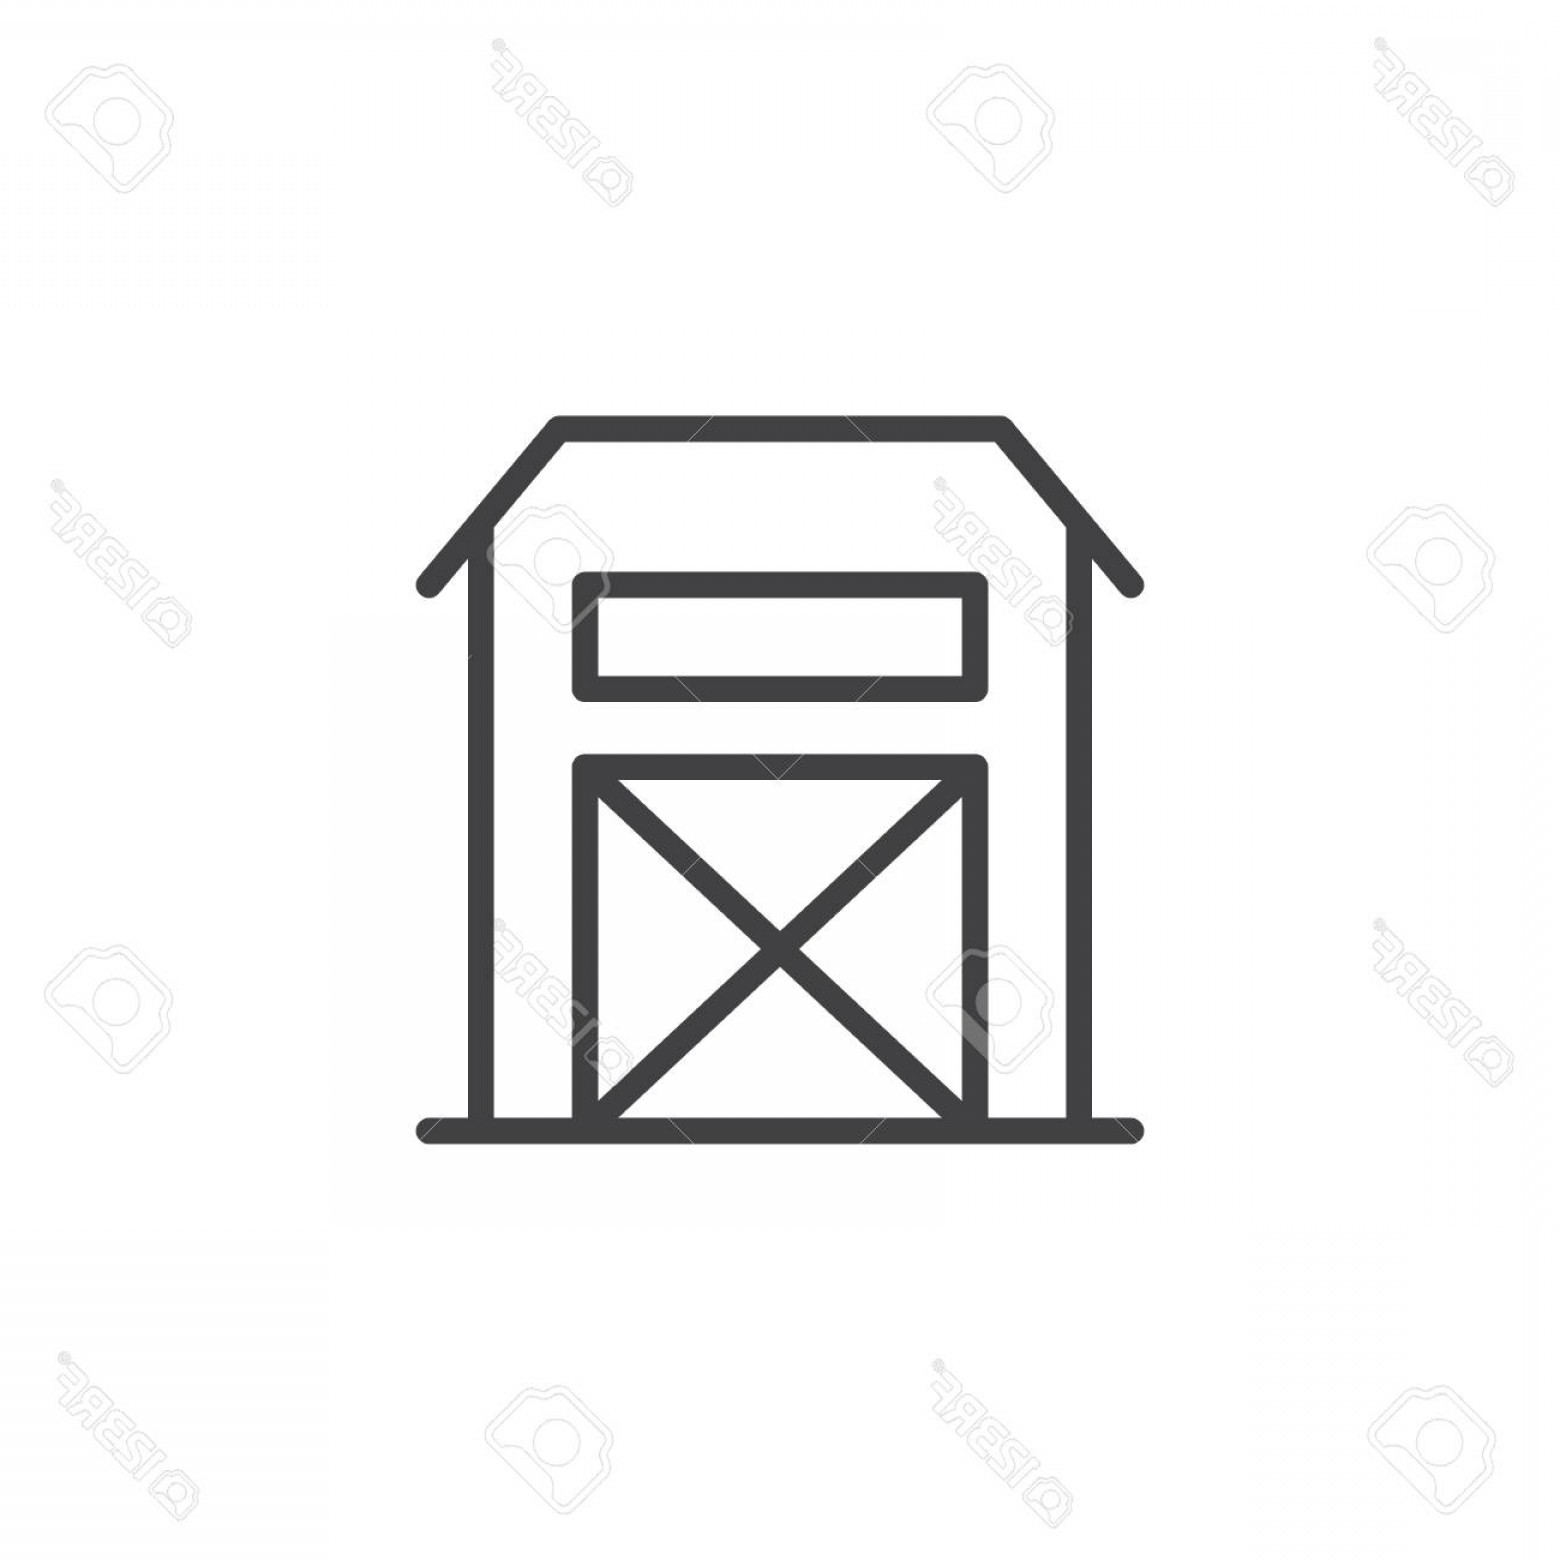 Barn Outline Vector: Photostock Vector Farm Barn Building Line Icon Outline Vector Sign Linear Style Pictogram Isolated On White Warehouse